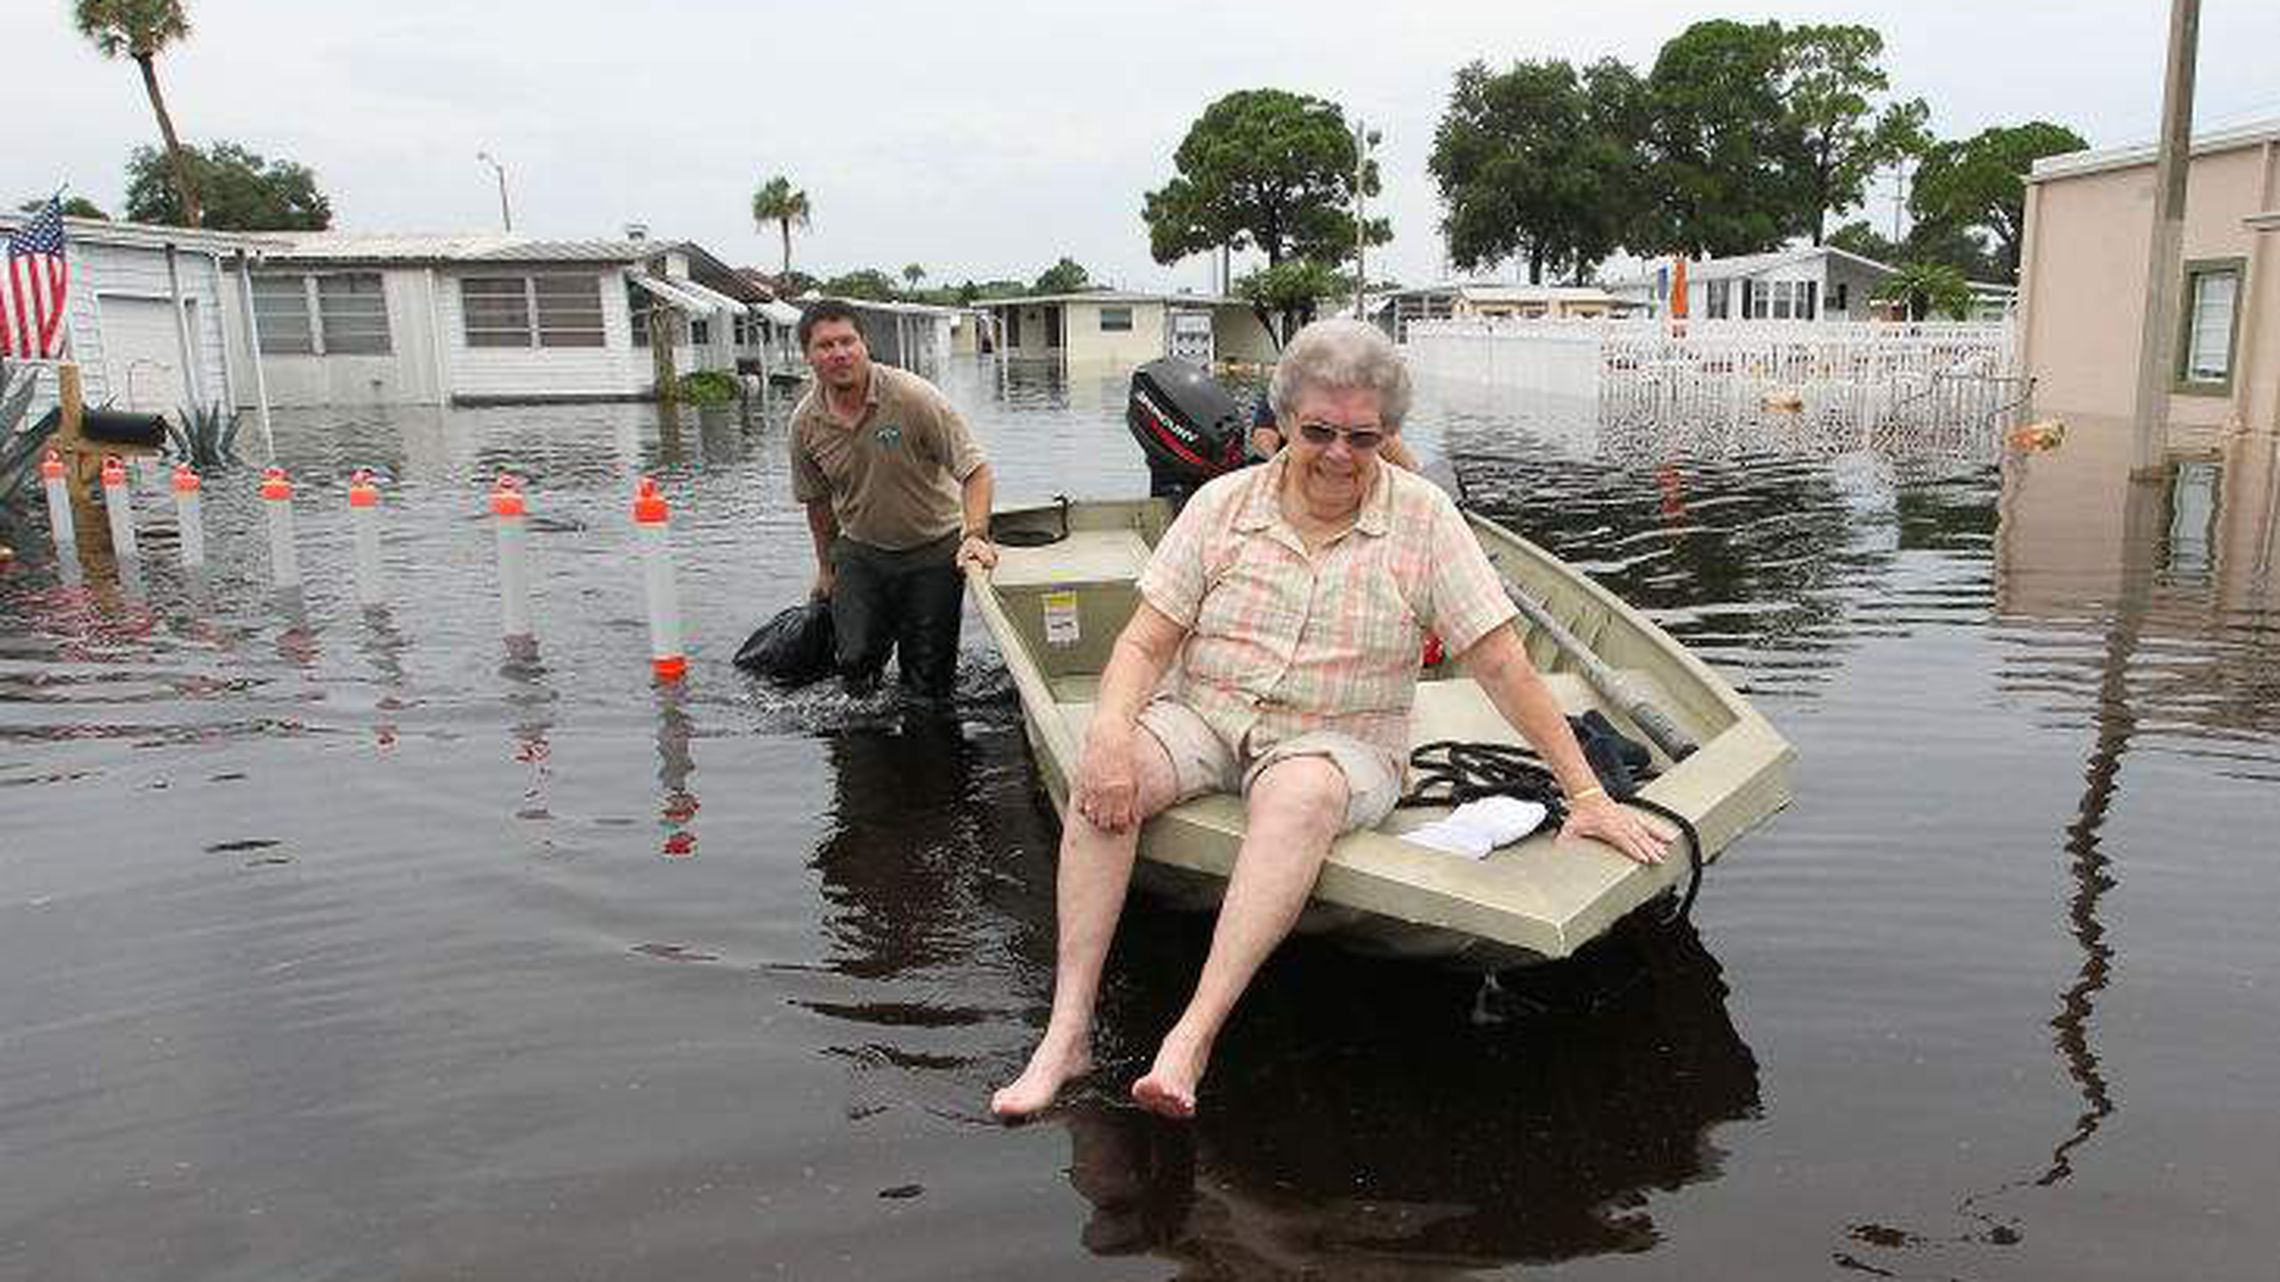 After a day of flooding, road closings and evacuations, the ... on home macon ga, home jacksonville fl, home orlando fl, home bonita springs fl,